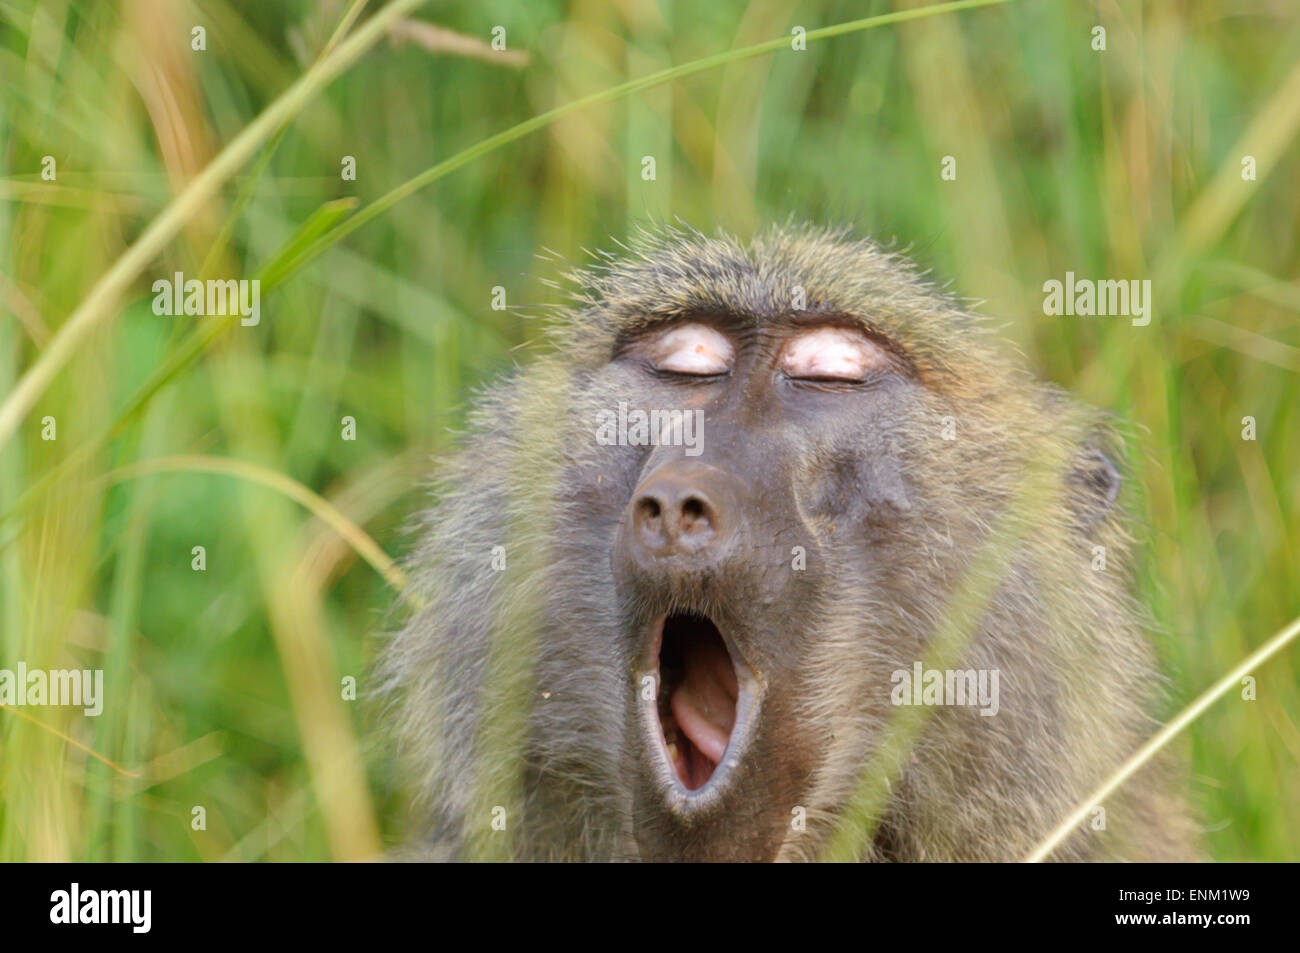 Image result for Akagera baboons monkeys